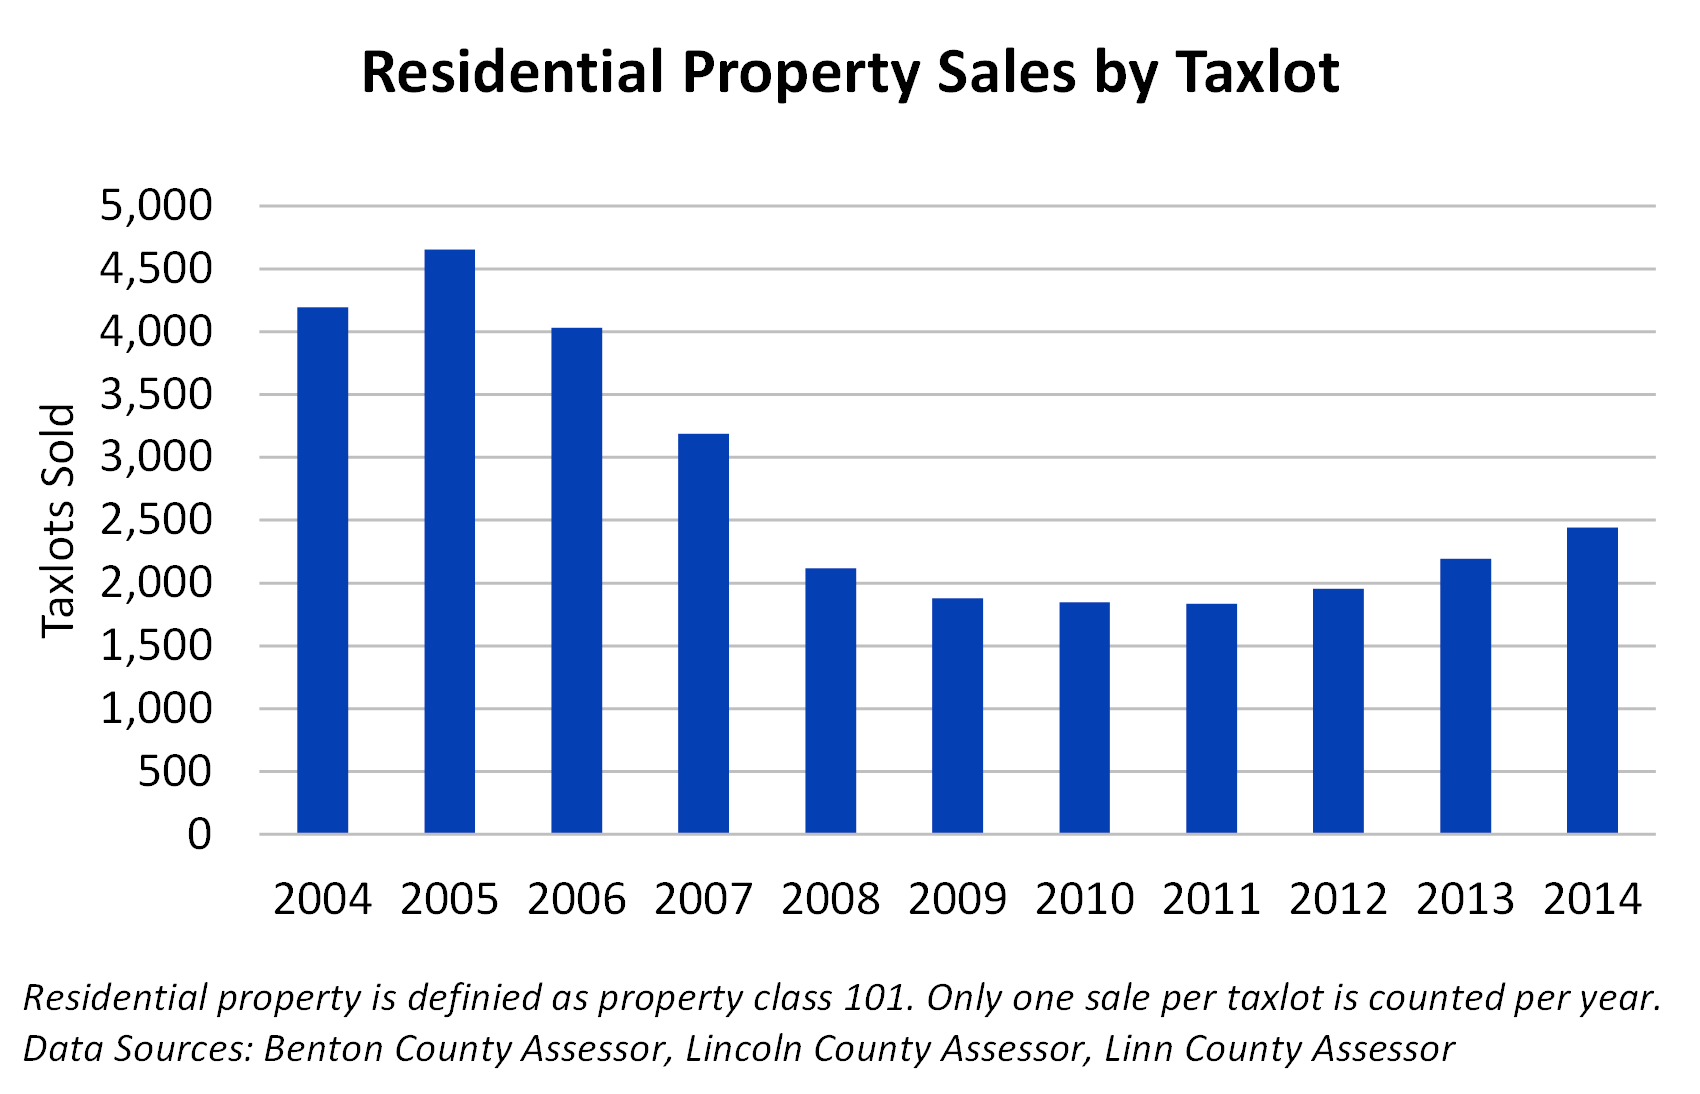 Residential Property Sales by Taxlot